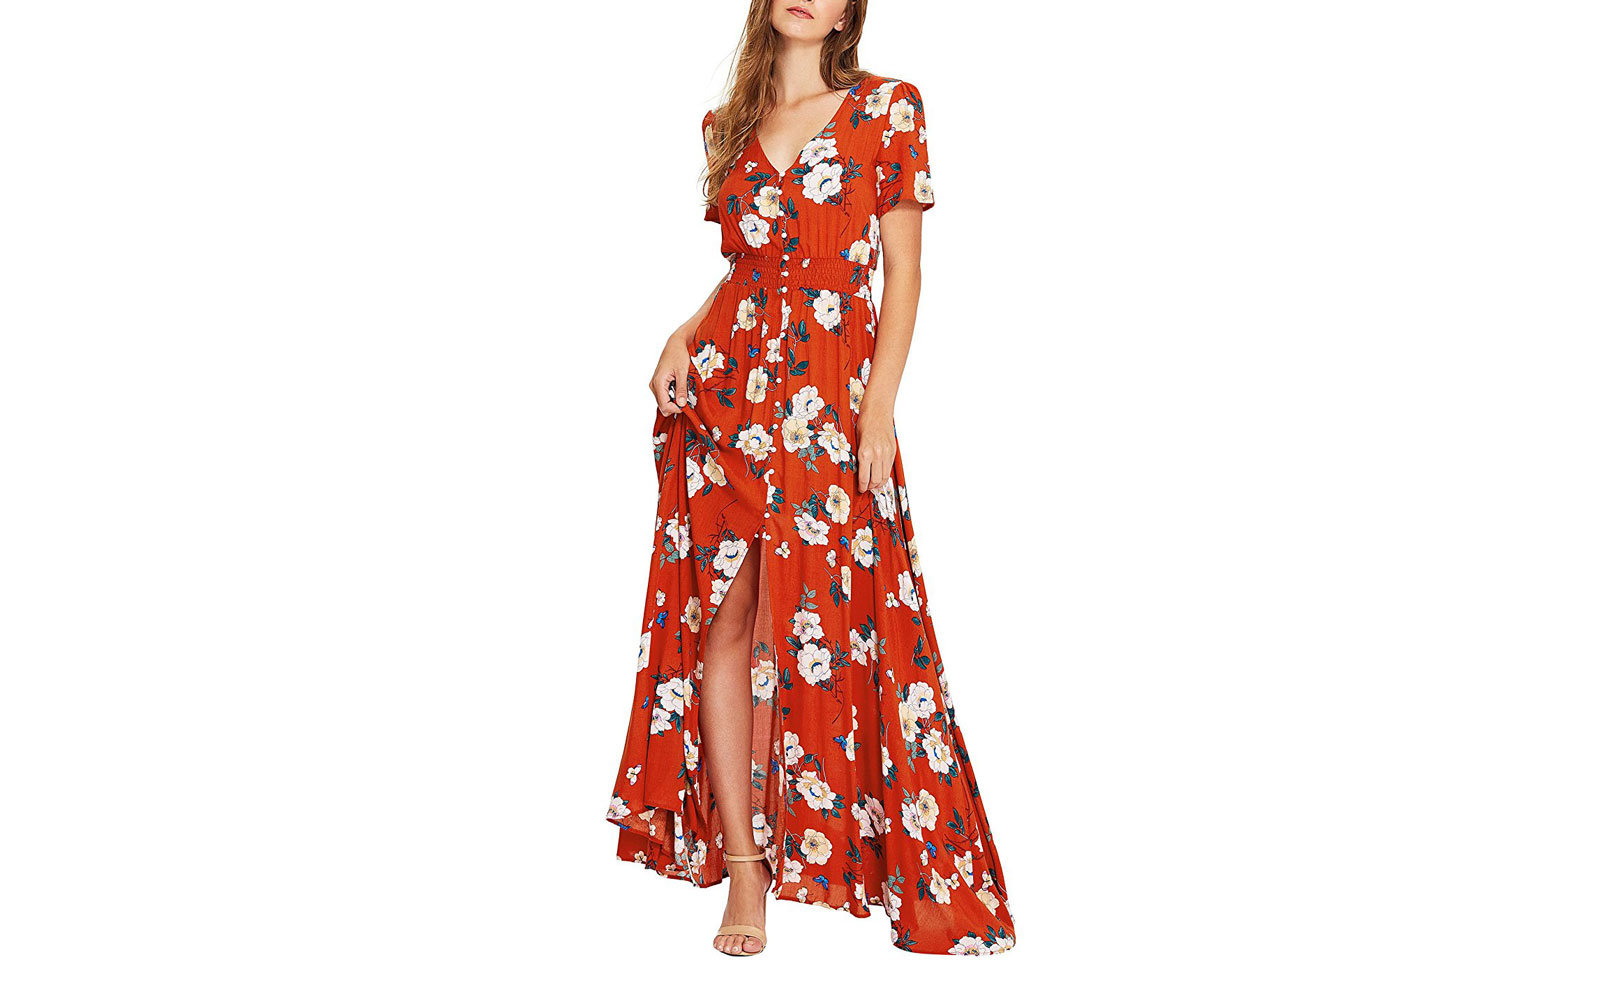 ec7c642aea9 16 Breezy Maxi Dresses You ll Be Wearing On Repeat This Summer ...